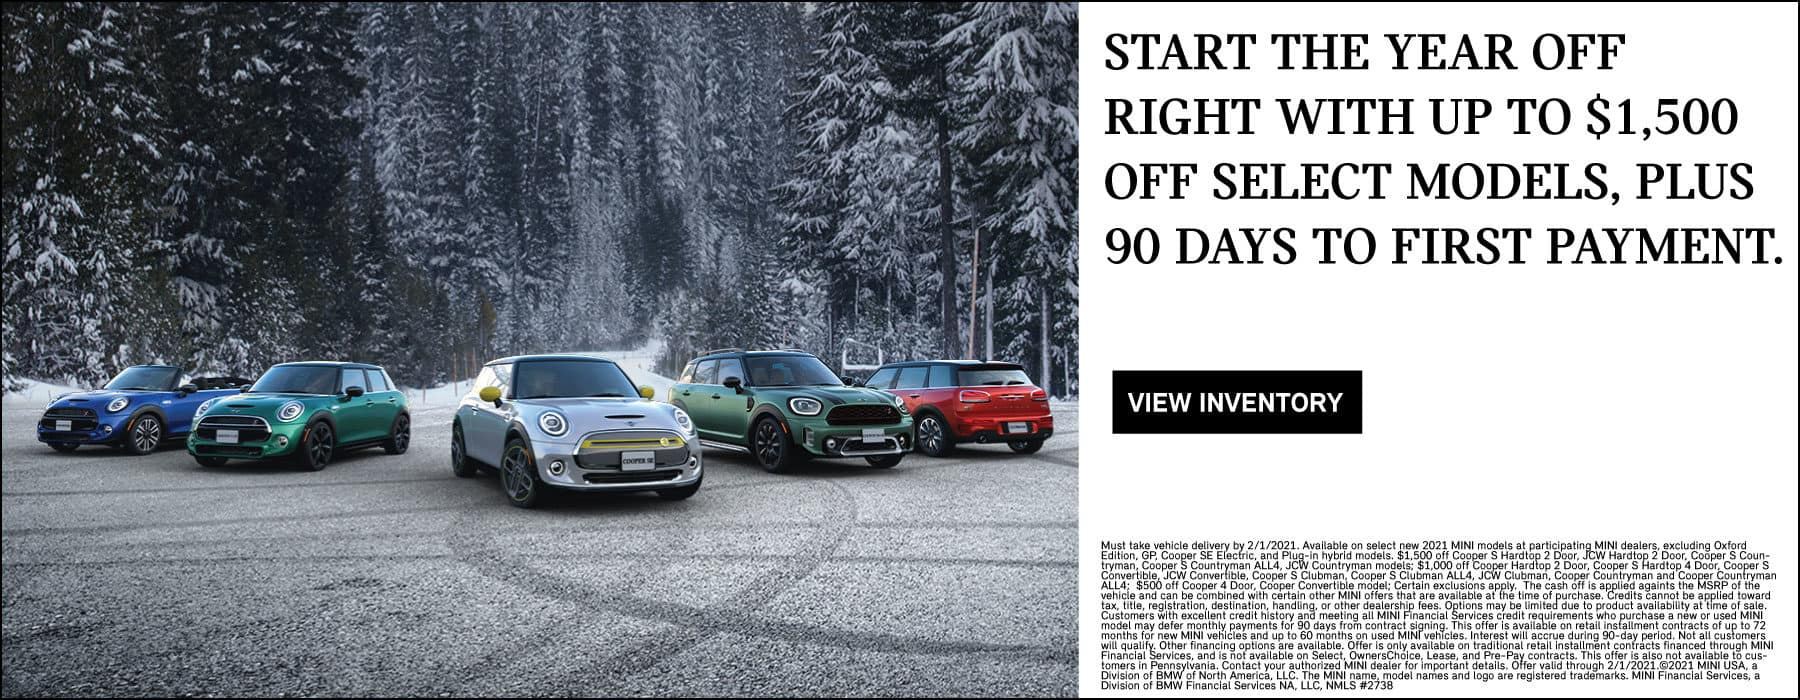 up to $1,500 off select models. plus 90 days to first payment. view inventory button. see dealer for complete details.